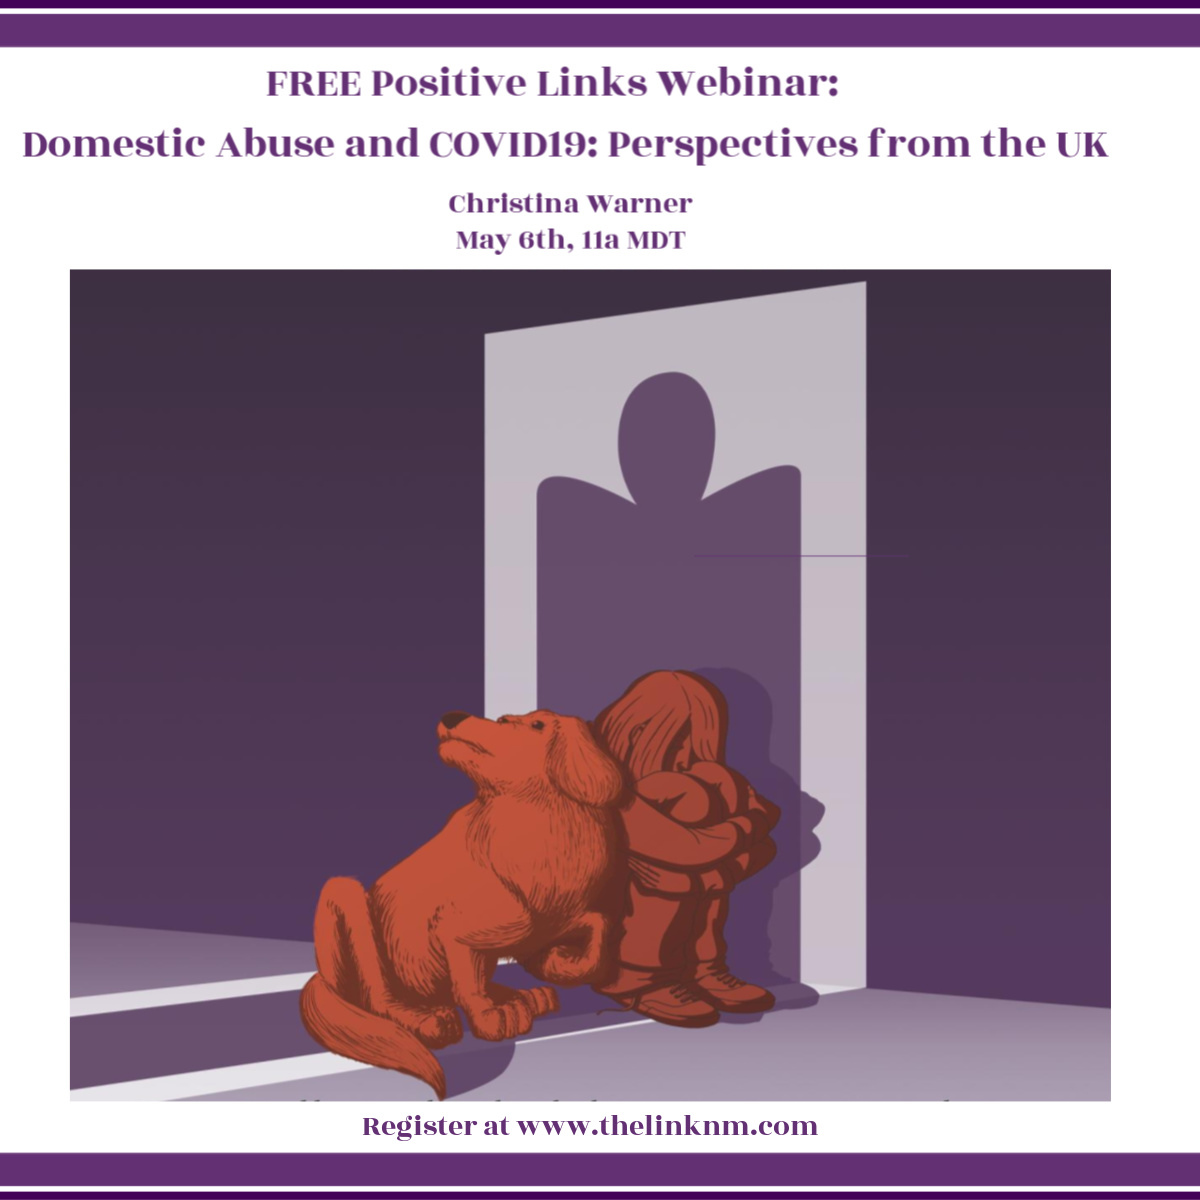 Free Positive Links Webinar: Domestic Abuse and COVID-19: Perspectives from the UK Christina Warner May 6th, 11am MDT Register at www.thelinknm.com